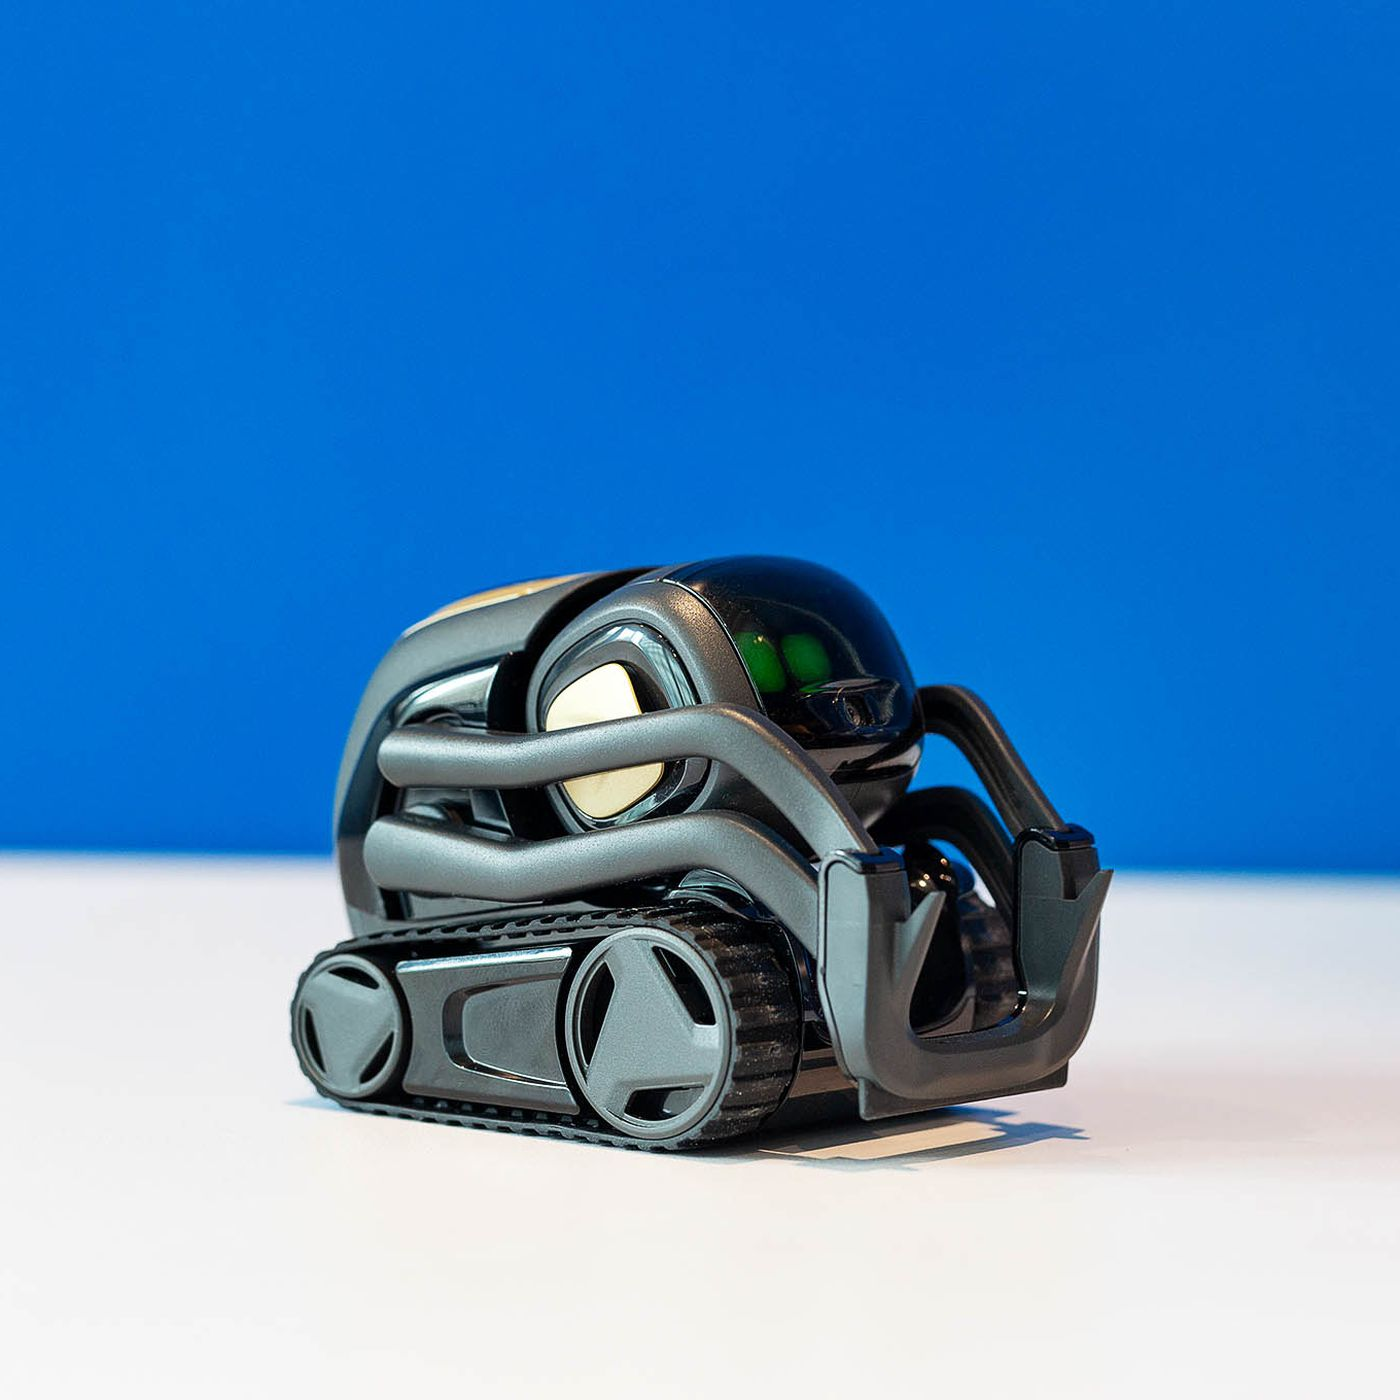 d6bd168933e7 The new Anki Vector robot is smart enough to just hang out - The Verge